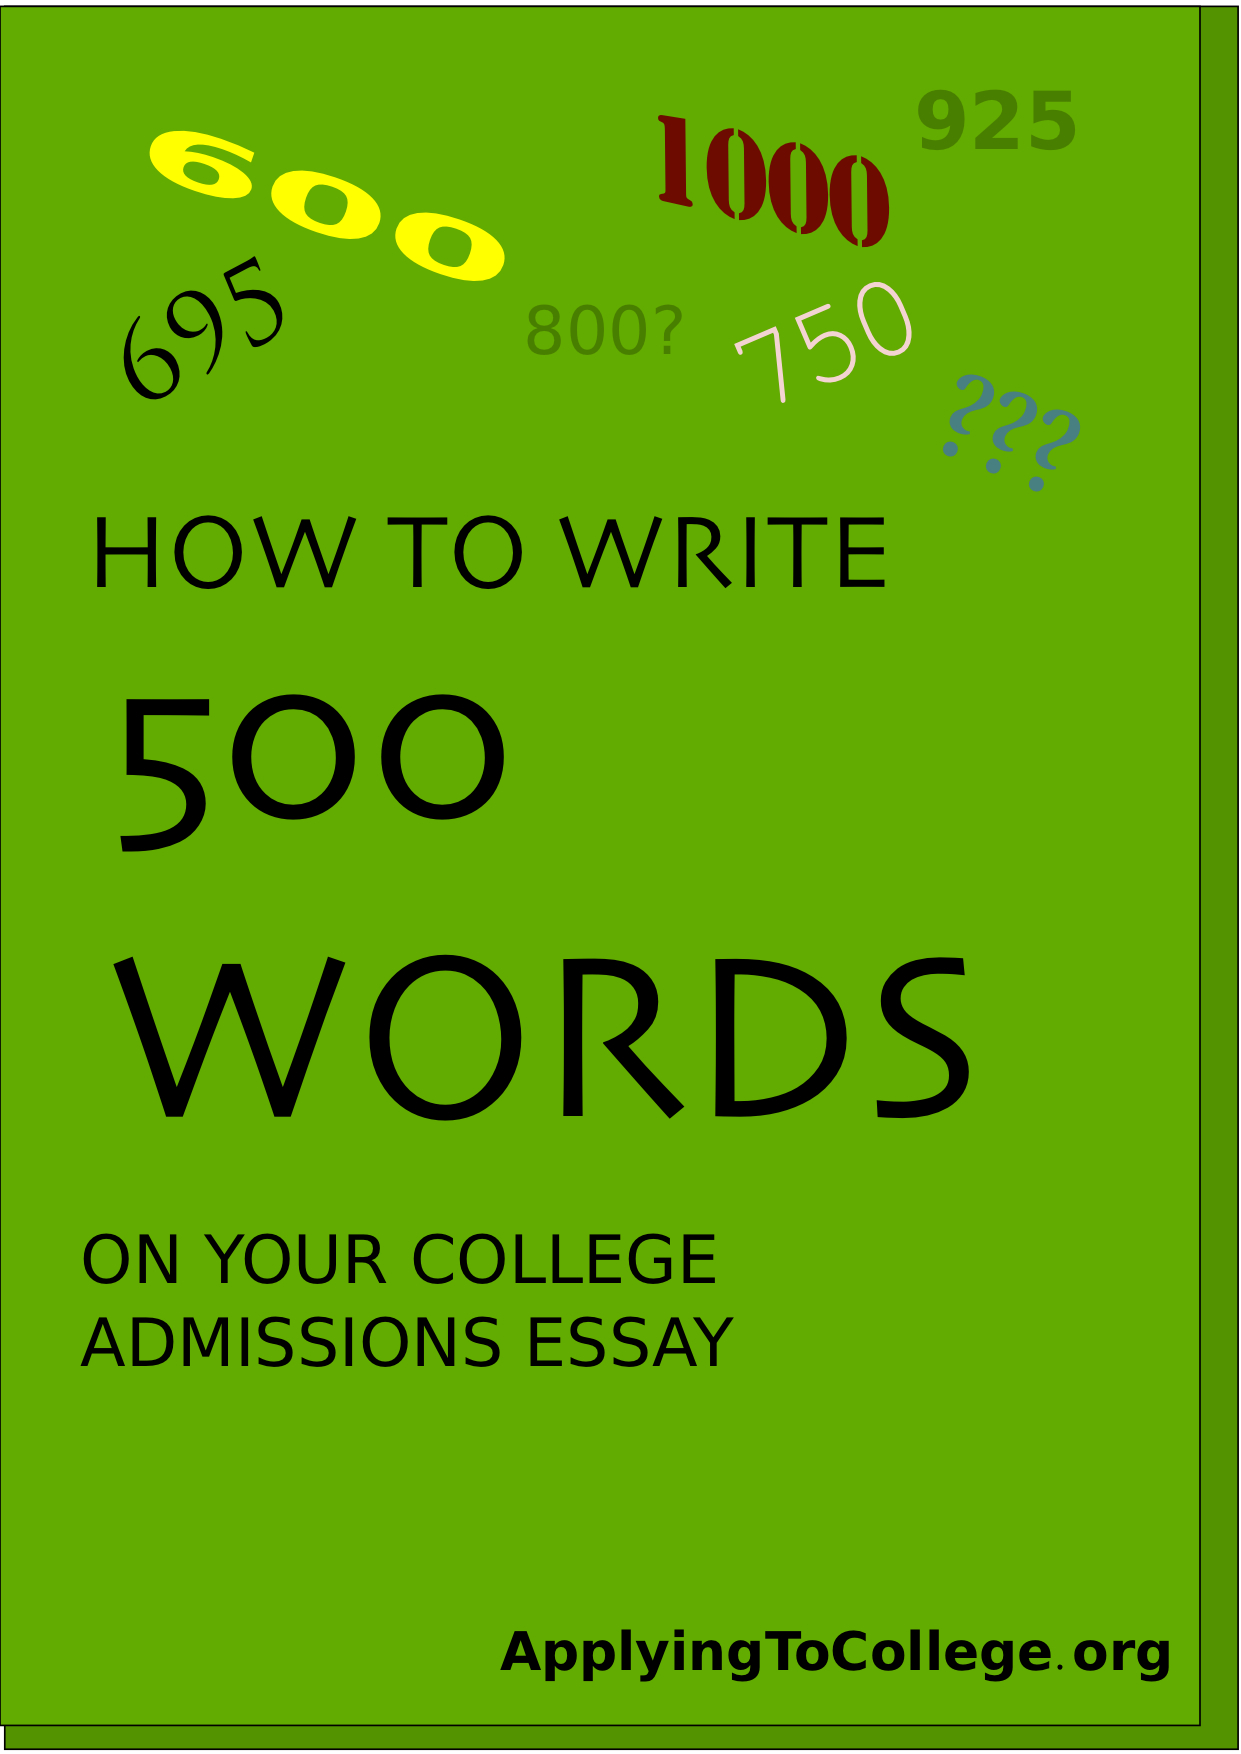 essays for the common app Have an idea for the common app essay prompt #1, but not sure how to expand on it here are some successful common app essay examplescommon app essay prompt #1 some students have a background, identity, interest, or talent that is so meaningful they believe their application would be.